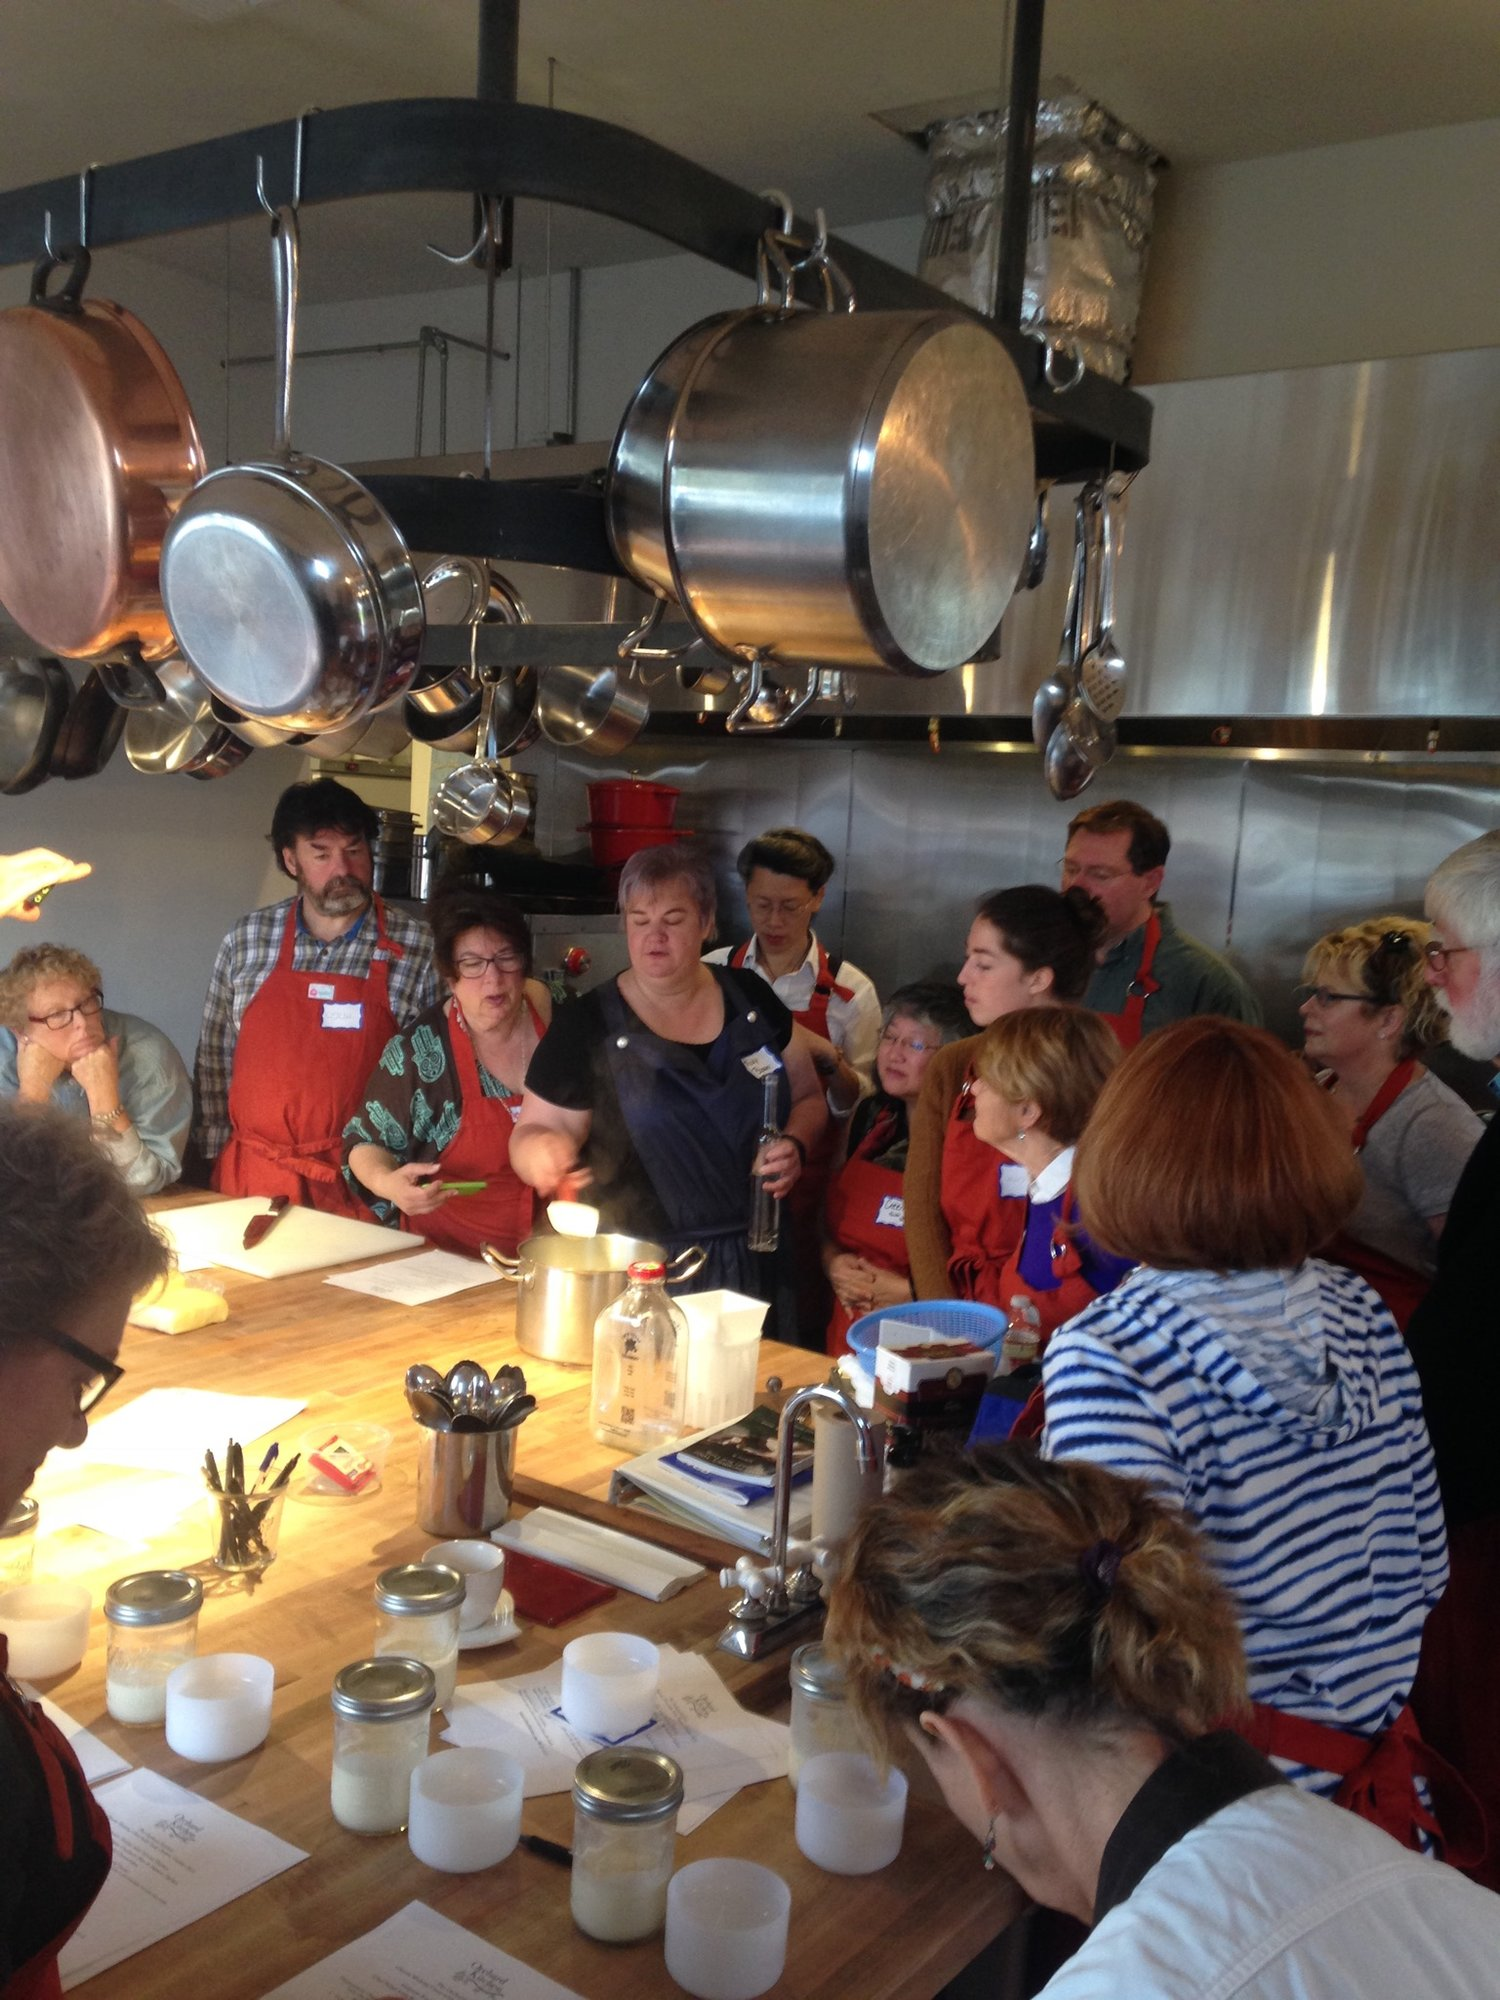 Guest Chef Vicky Brown teaching a cheese class